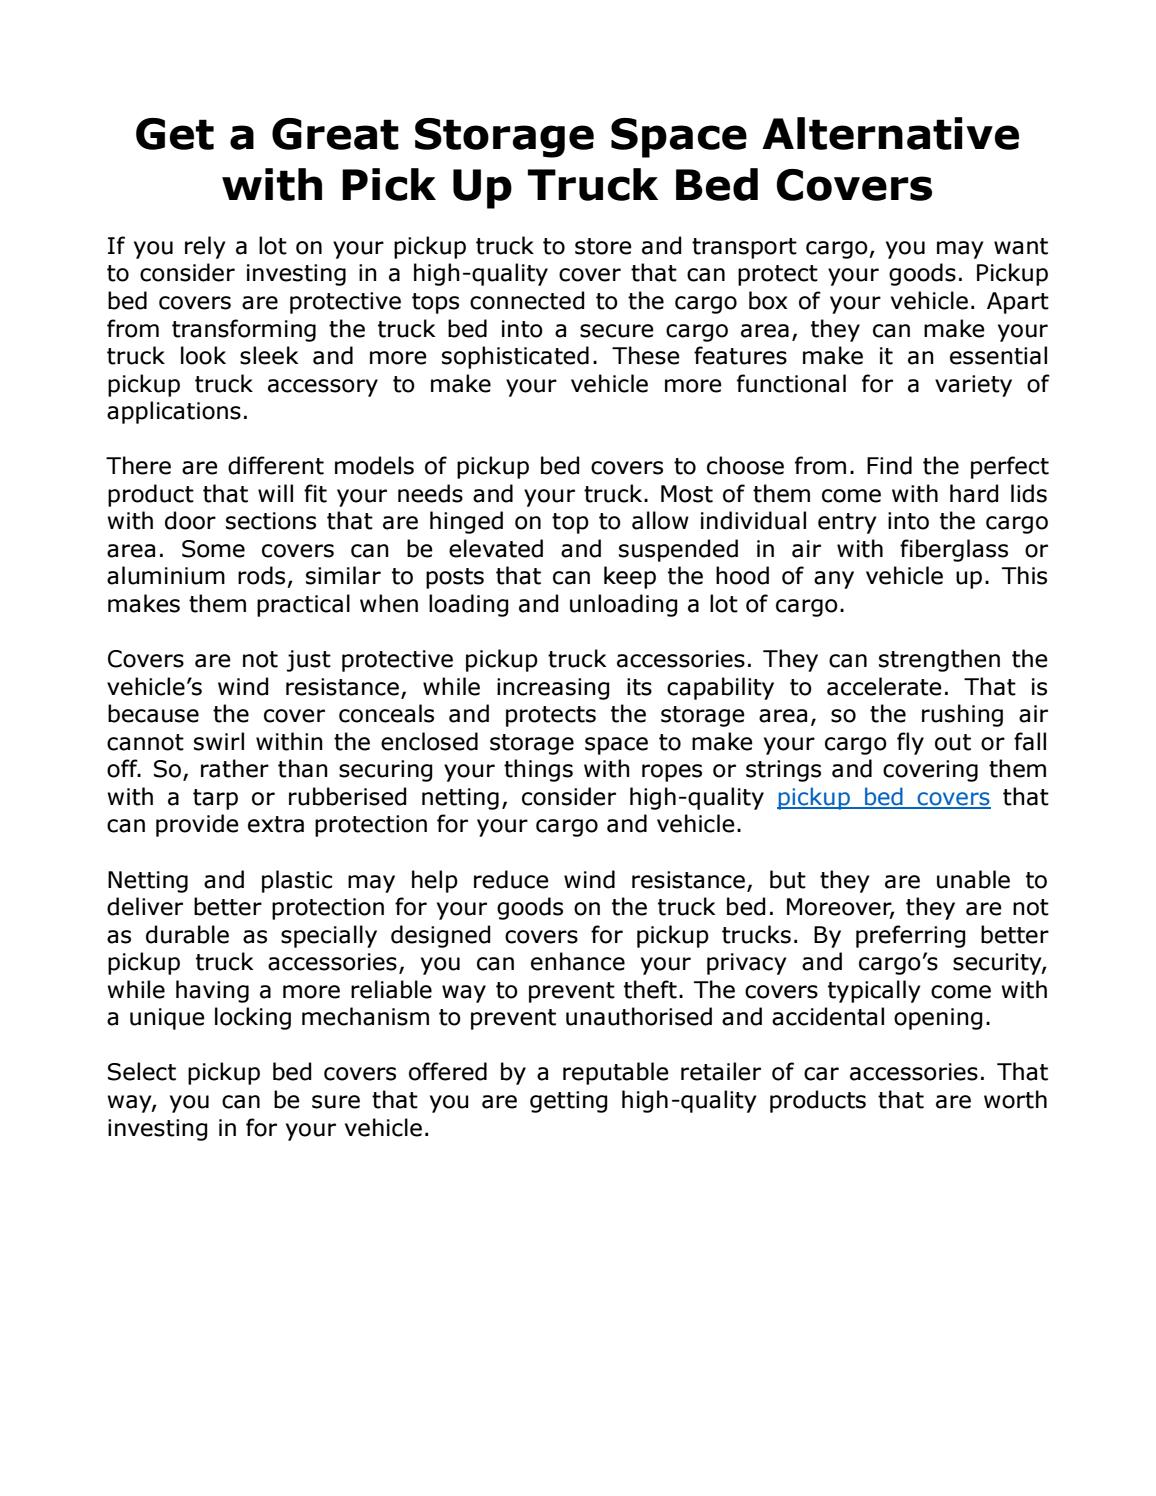 Get A Great Storage Space Alternative With Pick Up Truck Bed Covers By L A Car Accessories Store Issuu